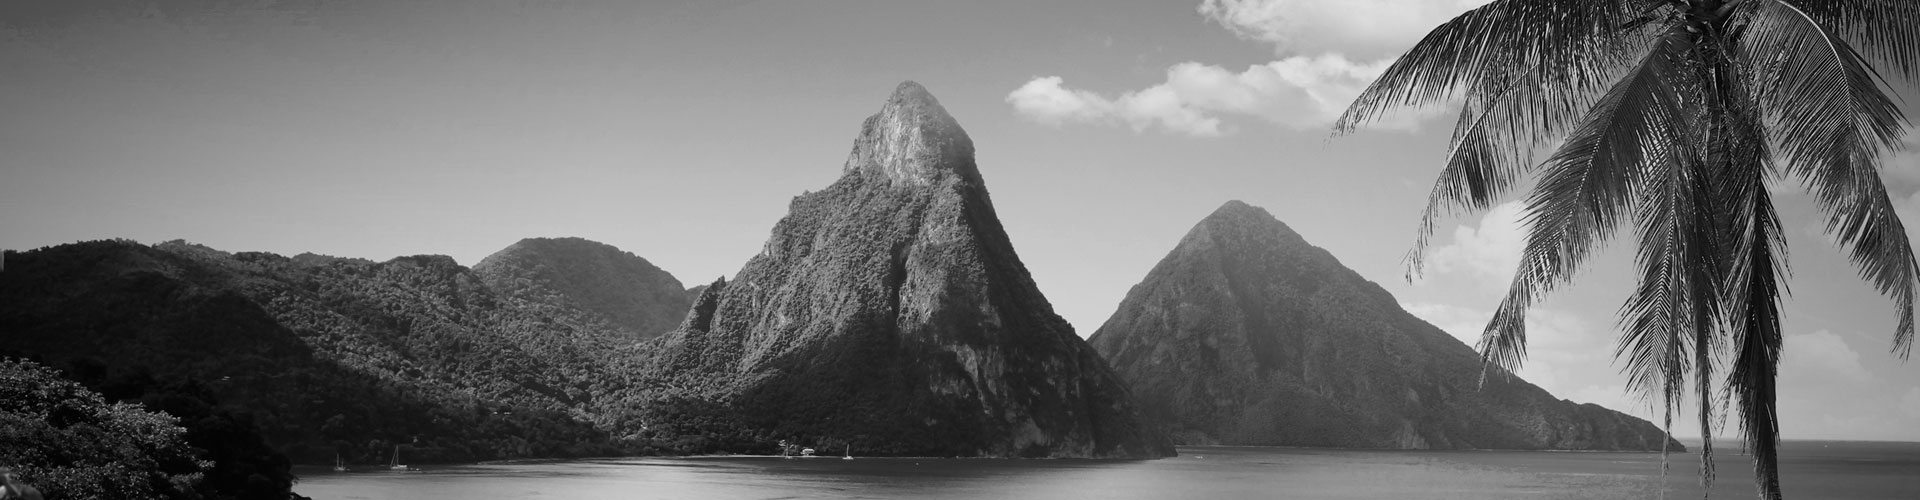 St Lucia Travel Advice